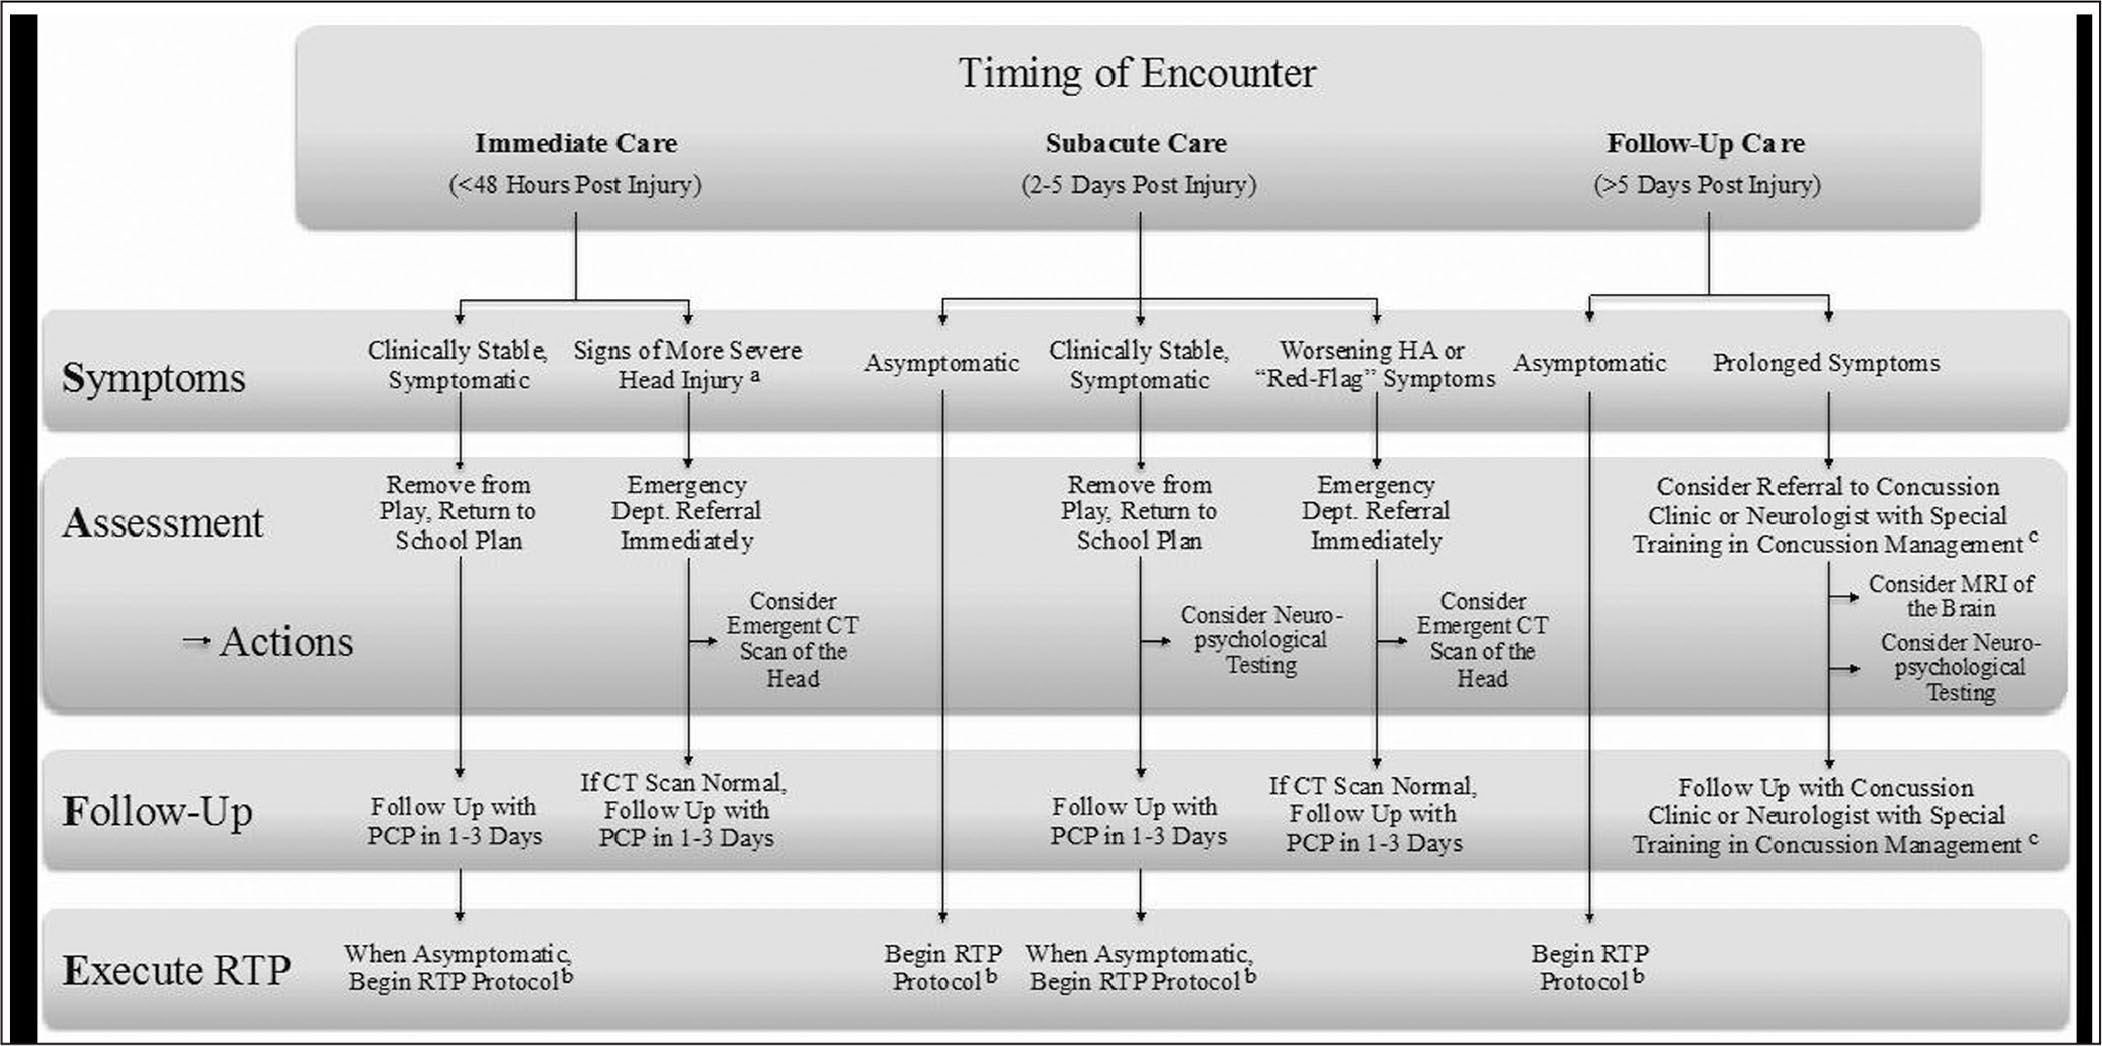 SAFE (Symptoms, Assessment, Follow-up, Execute return-to-play) protocol for concussion management. aLoss of consciousness greater than 5 seconds, signs of altered mental status, palpable skull fracture, scalp hematoma, severe mechanism of injury, signs of basilar skull fracture, history of vomiting or severe headache. bOnly begin return-to-play protocol once patient is completely asymptomatic for 24 hours. cMay also be indicated in patients who have sustained multiple concussions within a short time frame, have identified comorbidities, or have more concerning symptoms of a moderate traumatic brain injury. Abbreviations: CT, computed tomography; HA, headache; MRI, magnetic resonance imaging; PCP, primary care physician; RTP, return to play.